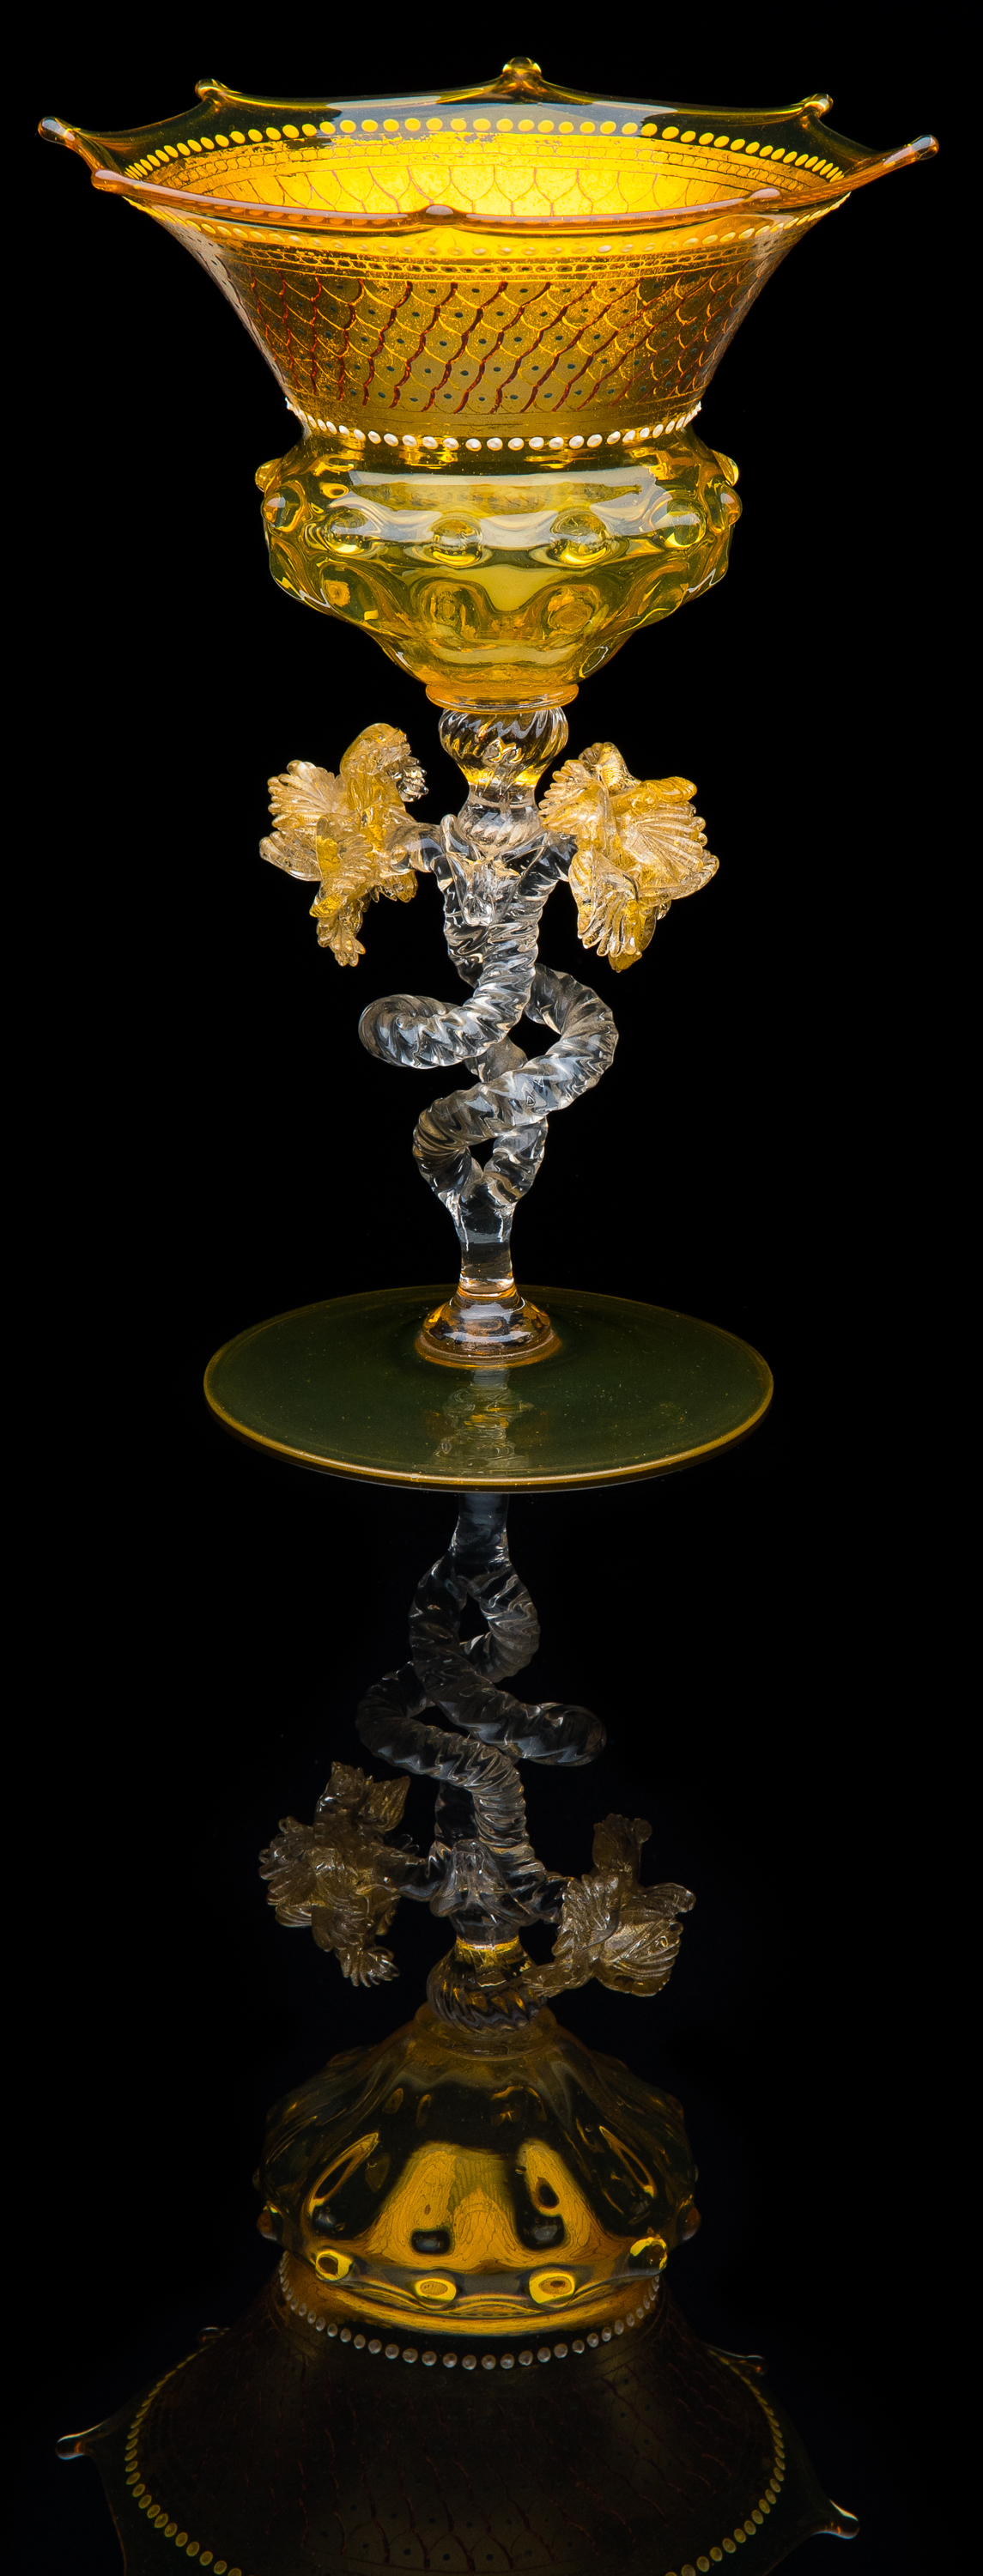 Salviati and Company,  Amber and Clear Goblet with Scalloped Rimmed Edge  (circa 1920, glass, 7 7/8 inches), VV.1115